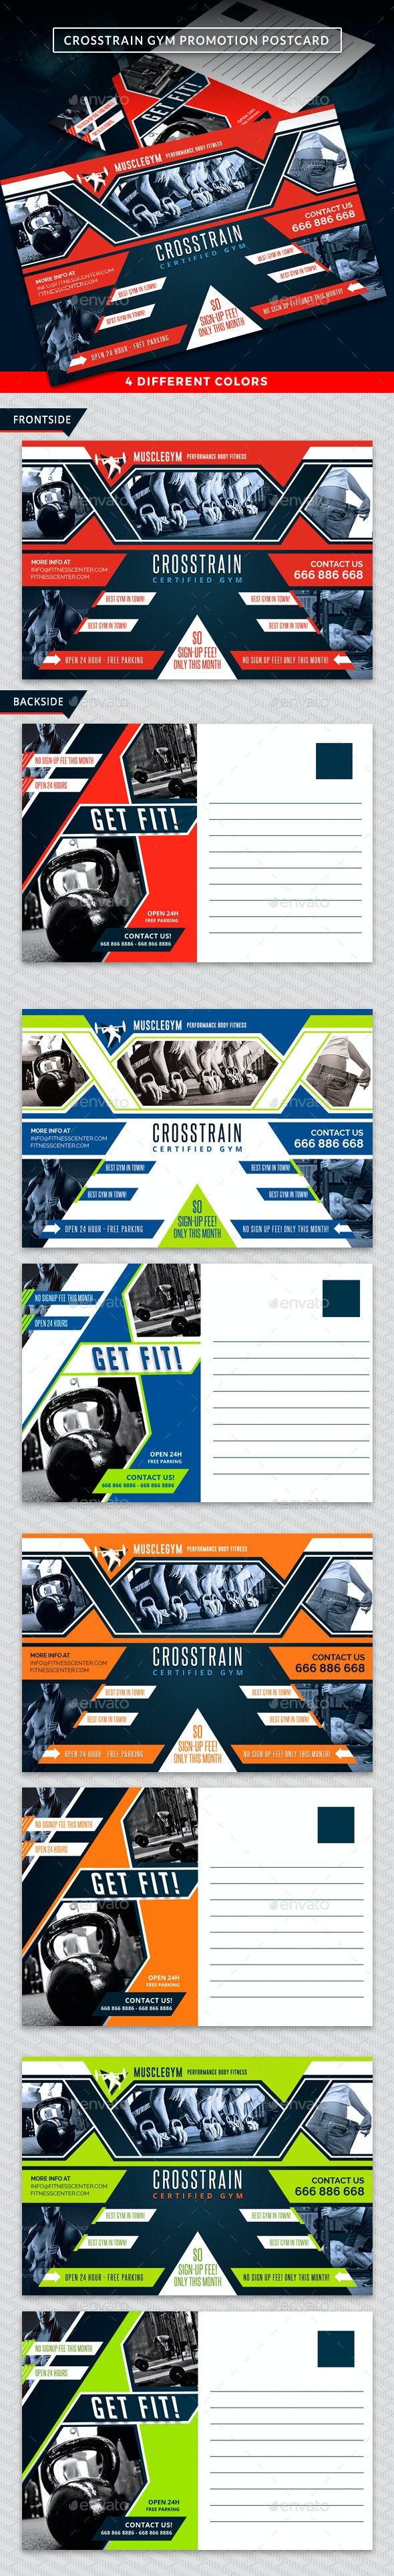 Cross Training Gym Postcard Template - Cards & Invites Print Templates